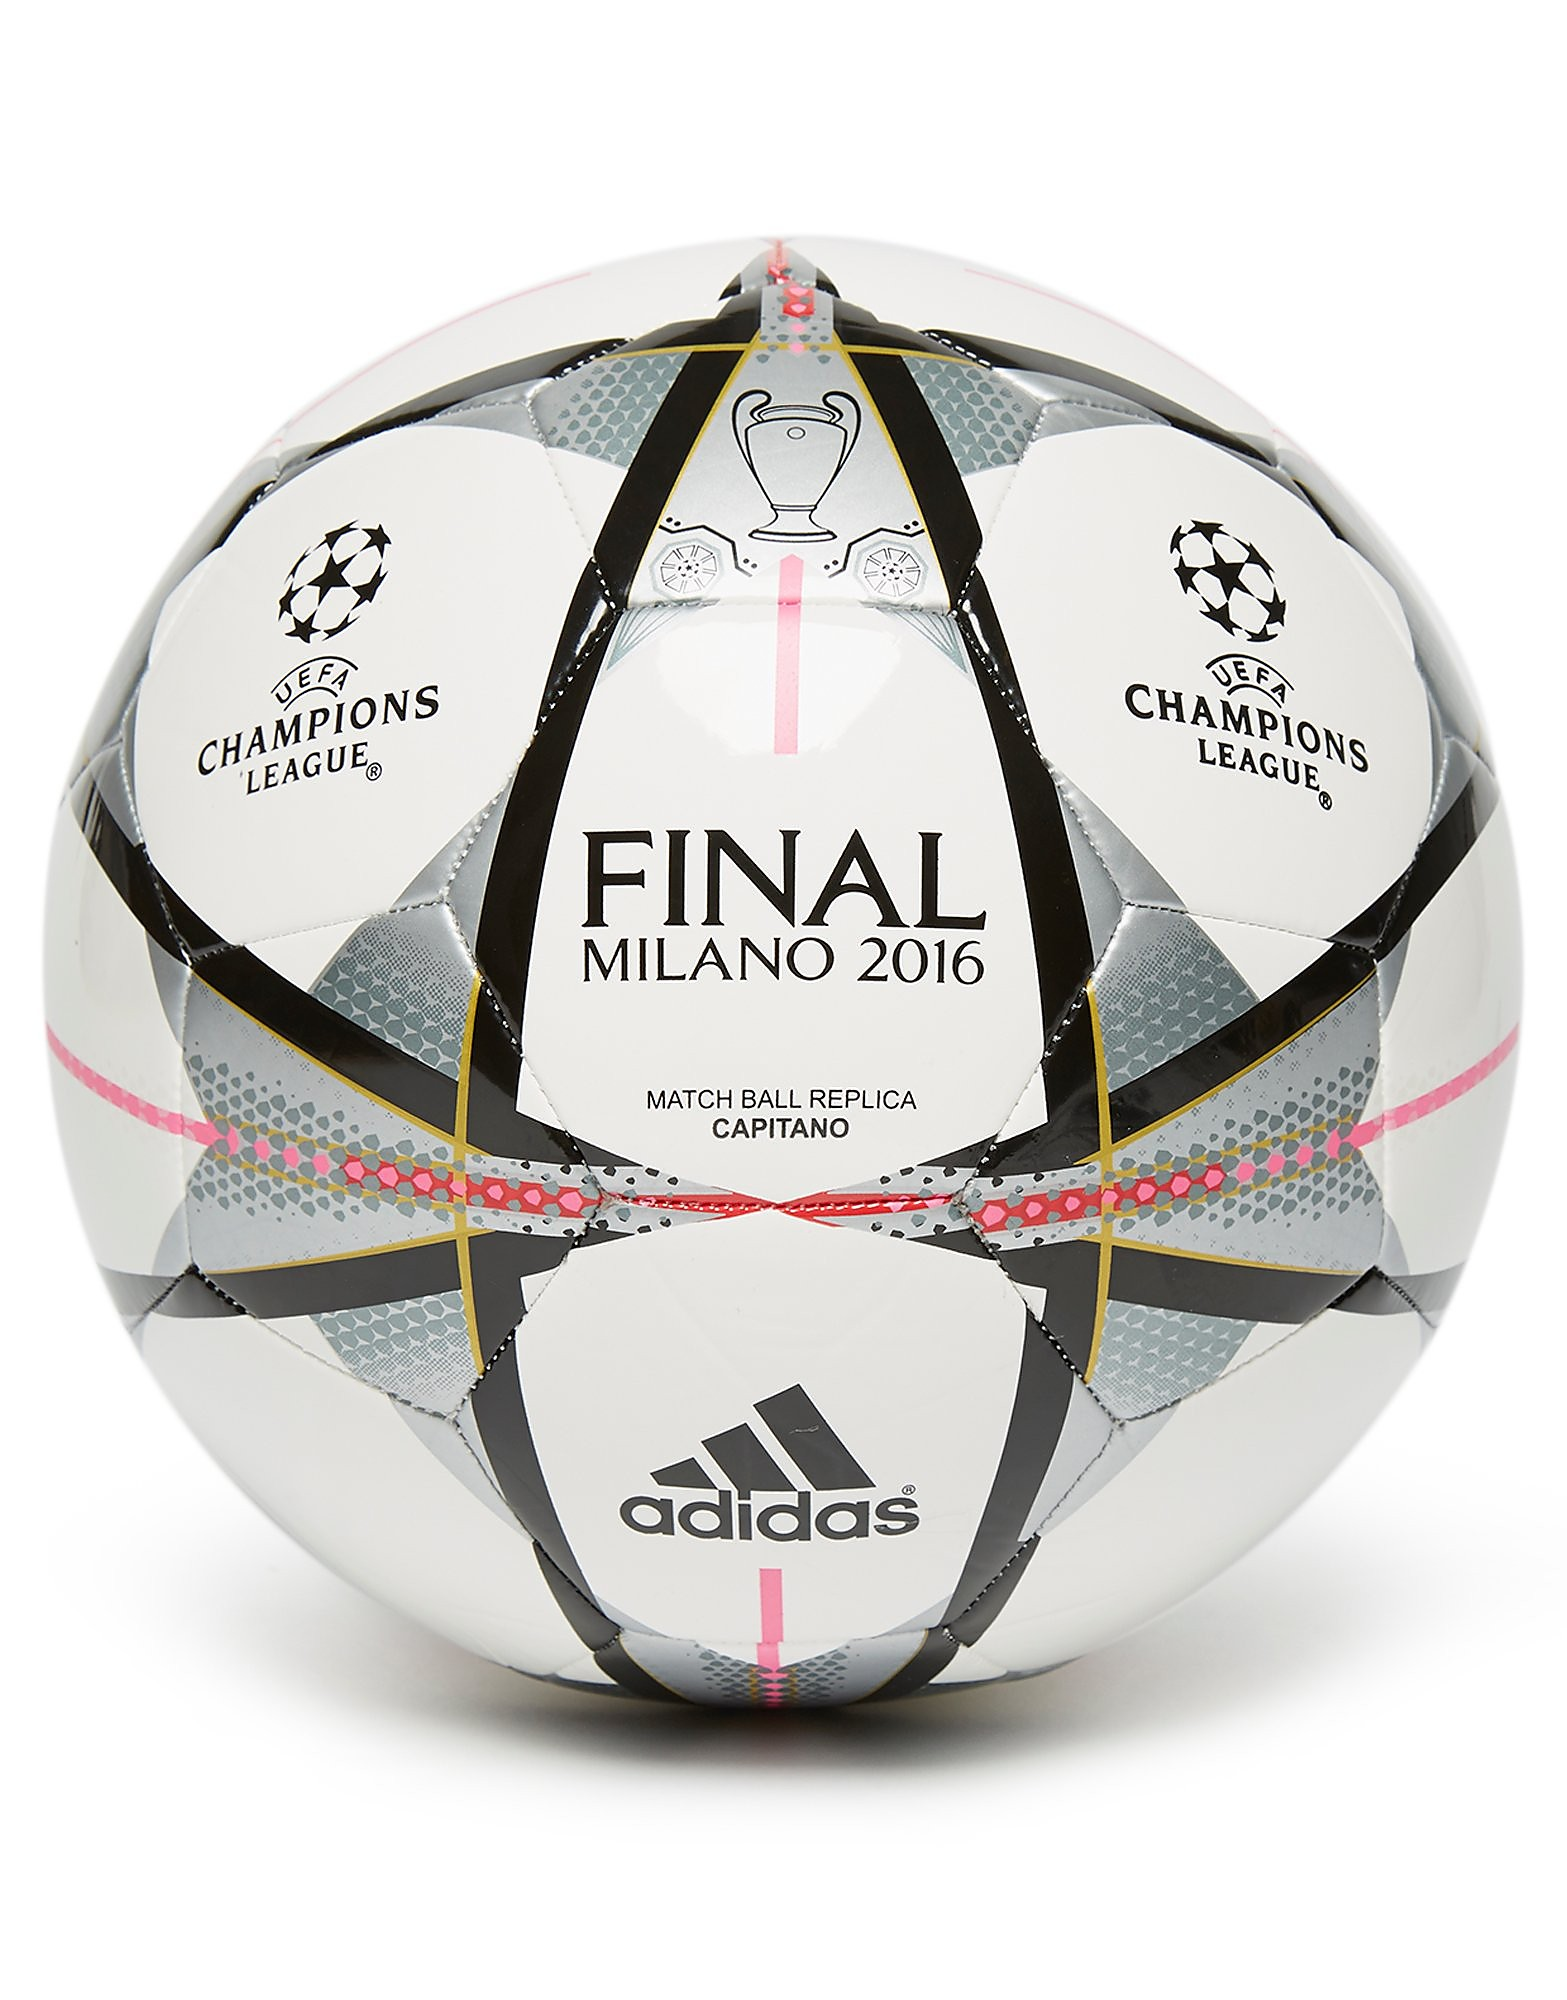 adidas Finale Milano 2016 Champions League Football